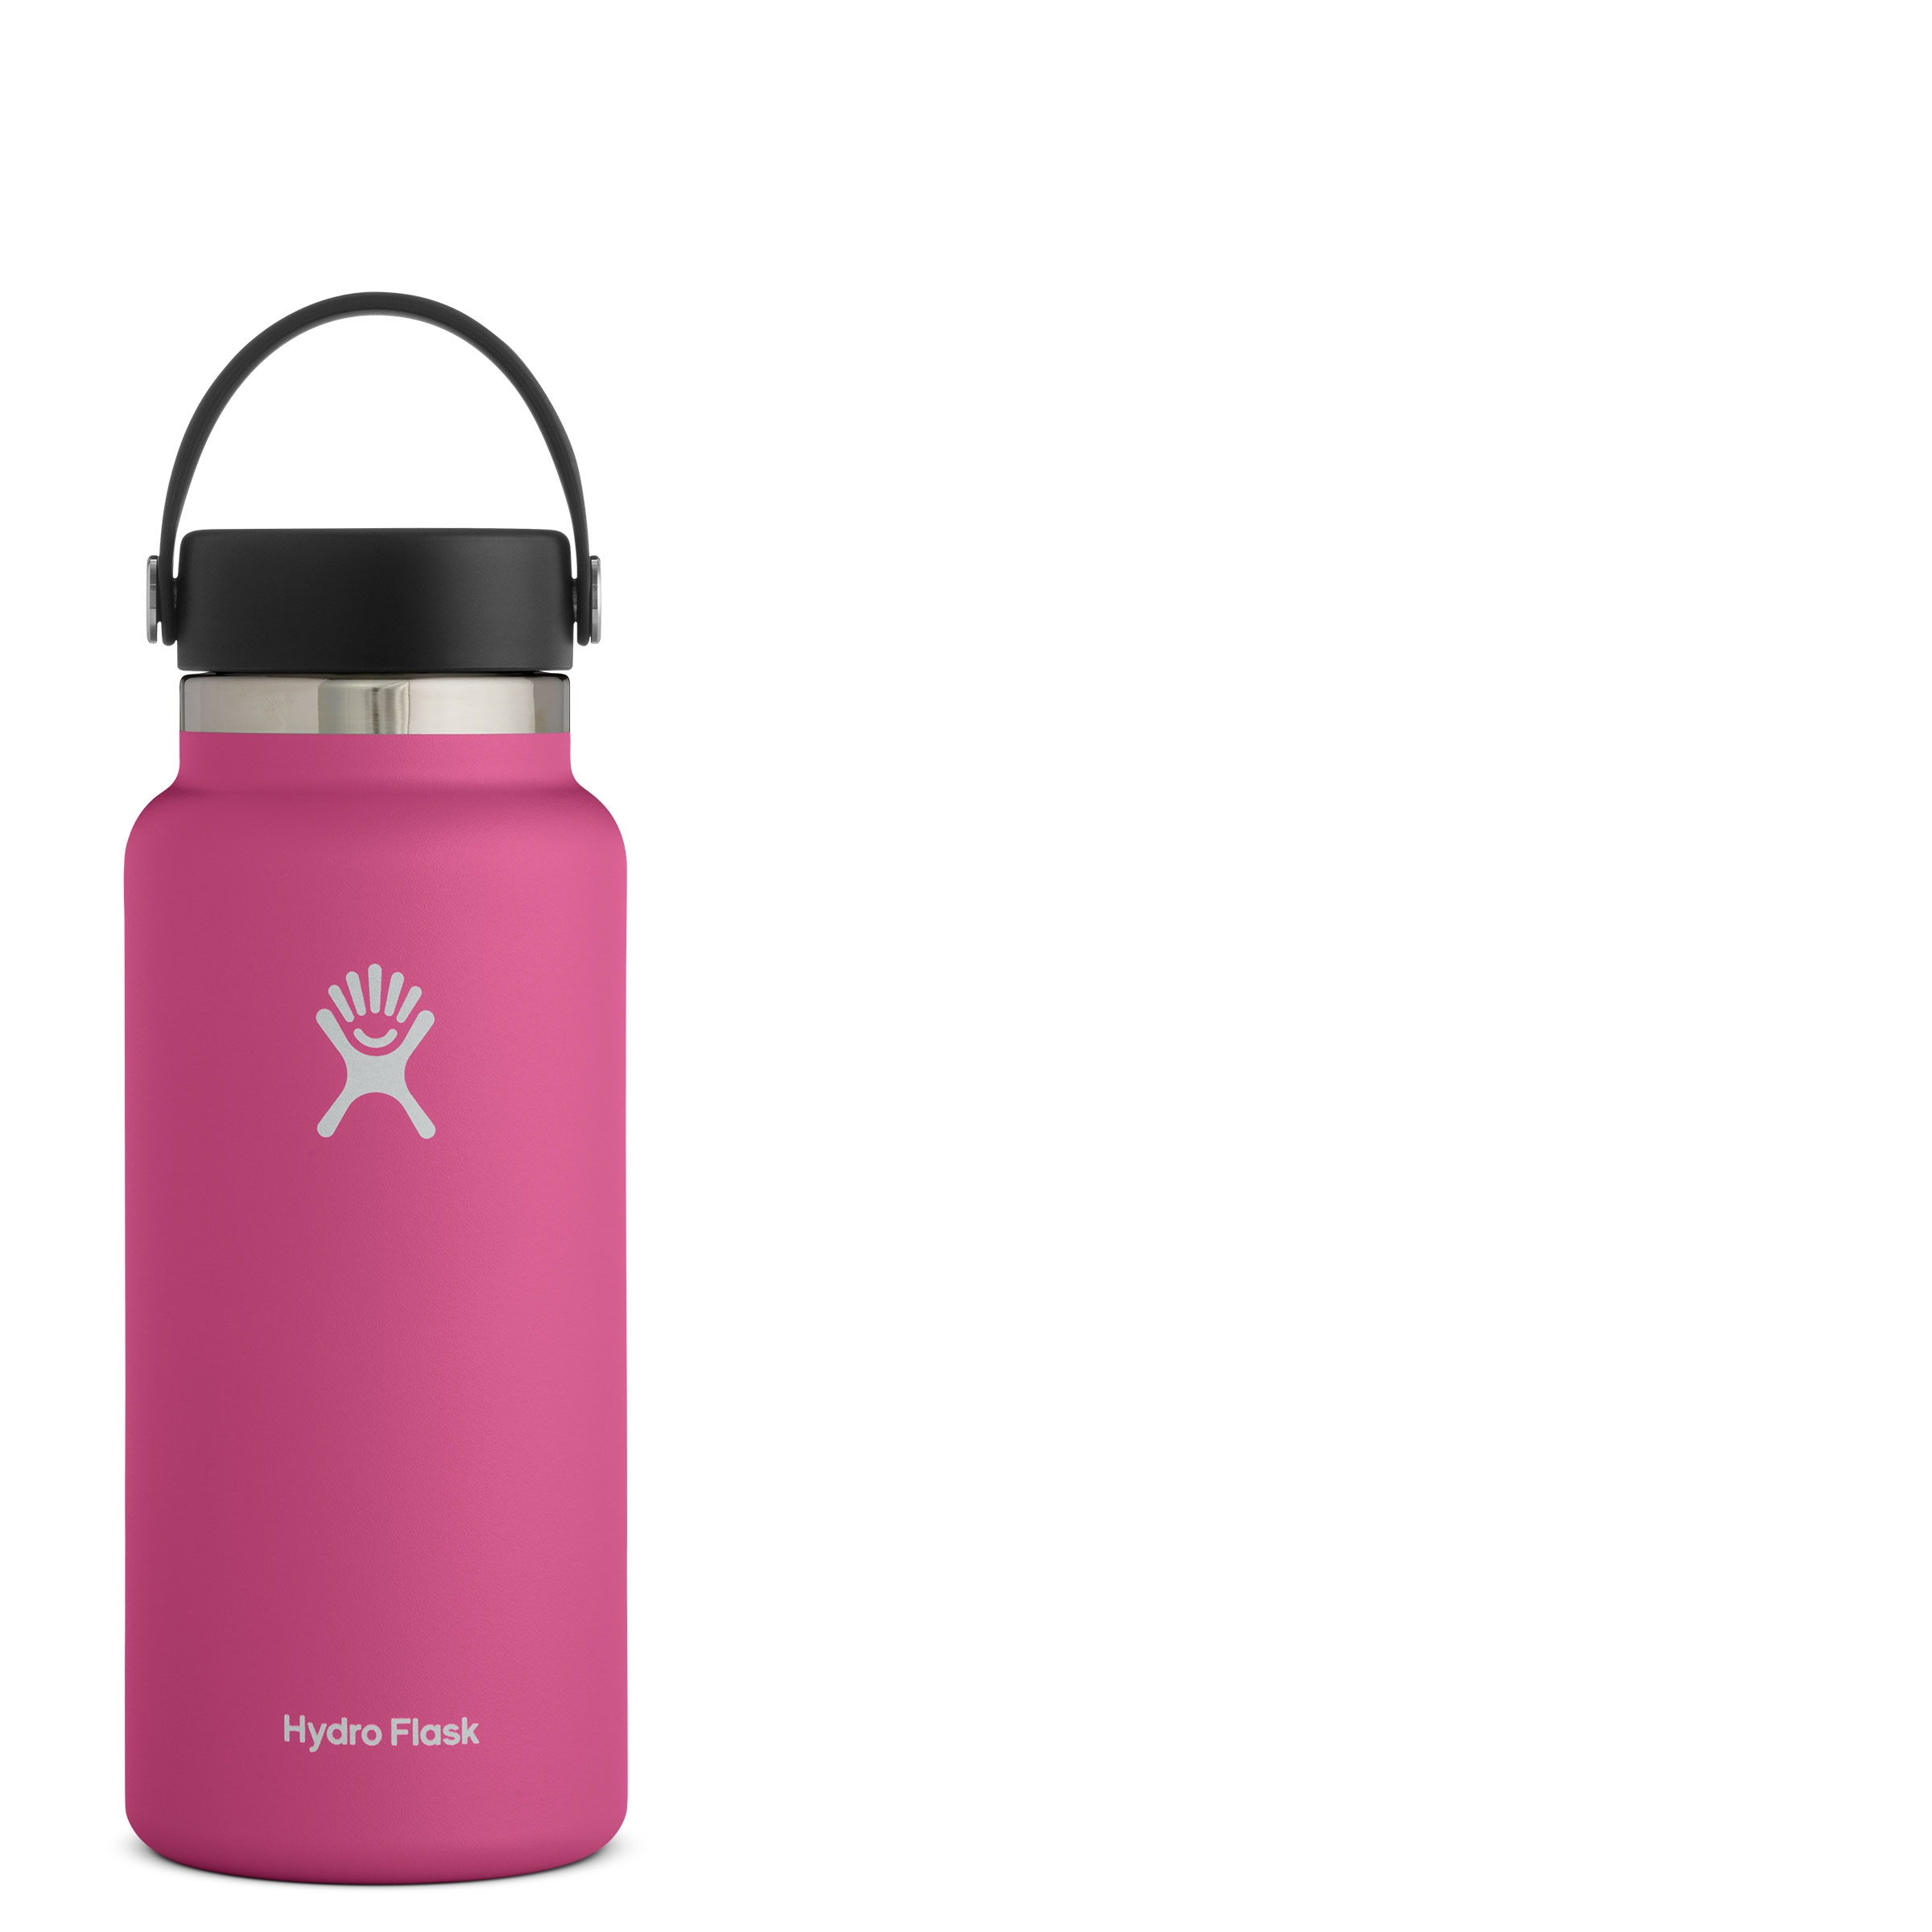 Hydroflask 32oz Wide Mouth with Flex Cap 2.0